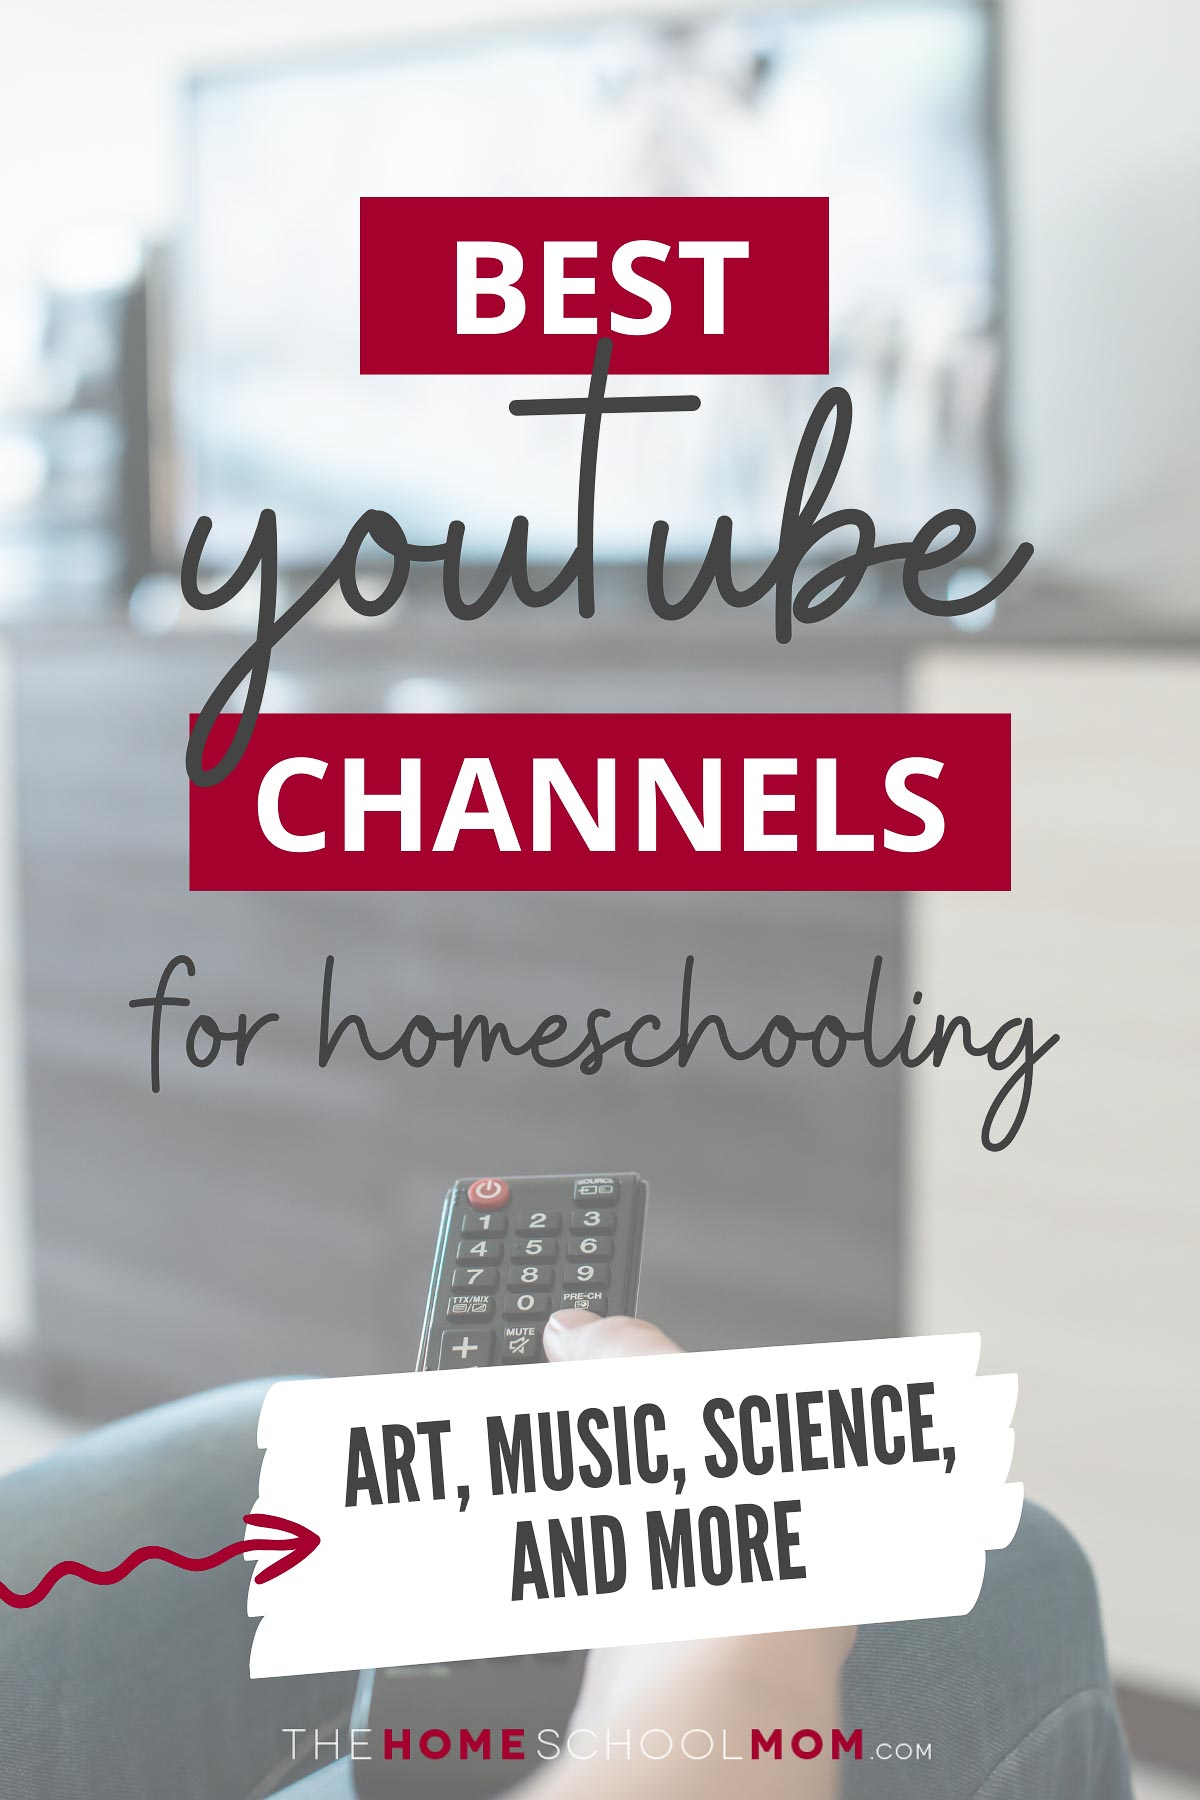 Image of hand holding a remote with text Best YouTube Channels for Homeschooling: Art, Music, Science, and More - TheHomeSchoolMom.com